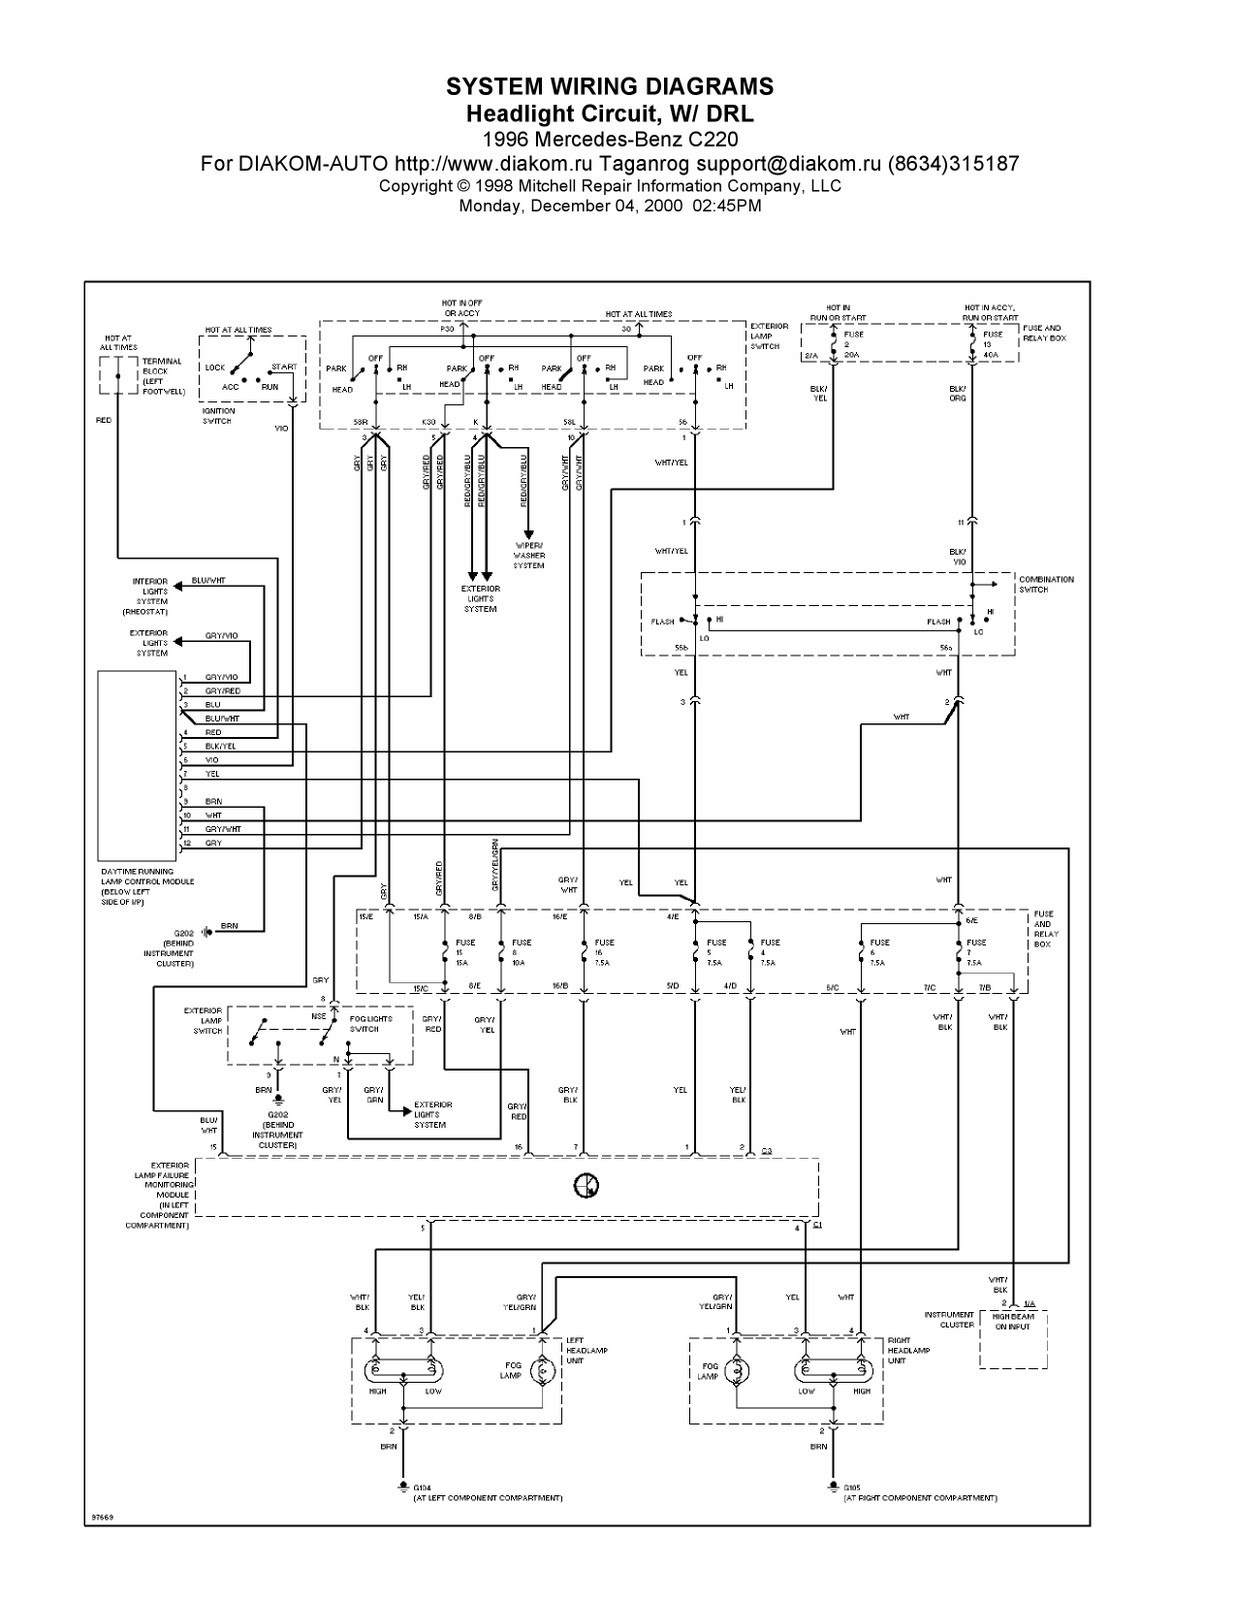 mercedes benz electrical wiring diagrams wiring database librarymercedes electrical diagrams wiring diagrams schema mercedes benz 1990 [ 1236 x 1600 Pixel ]